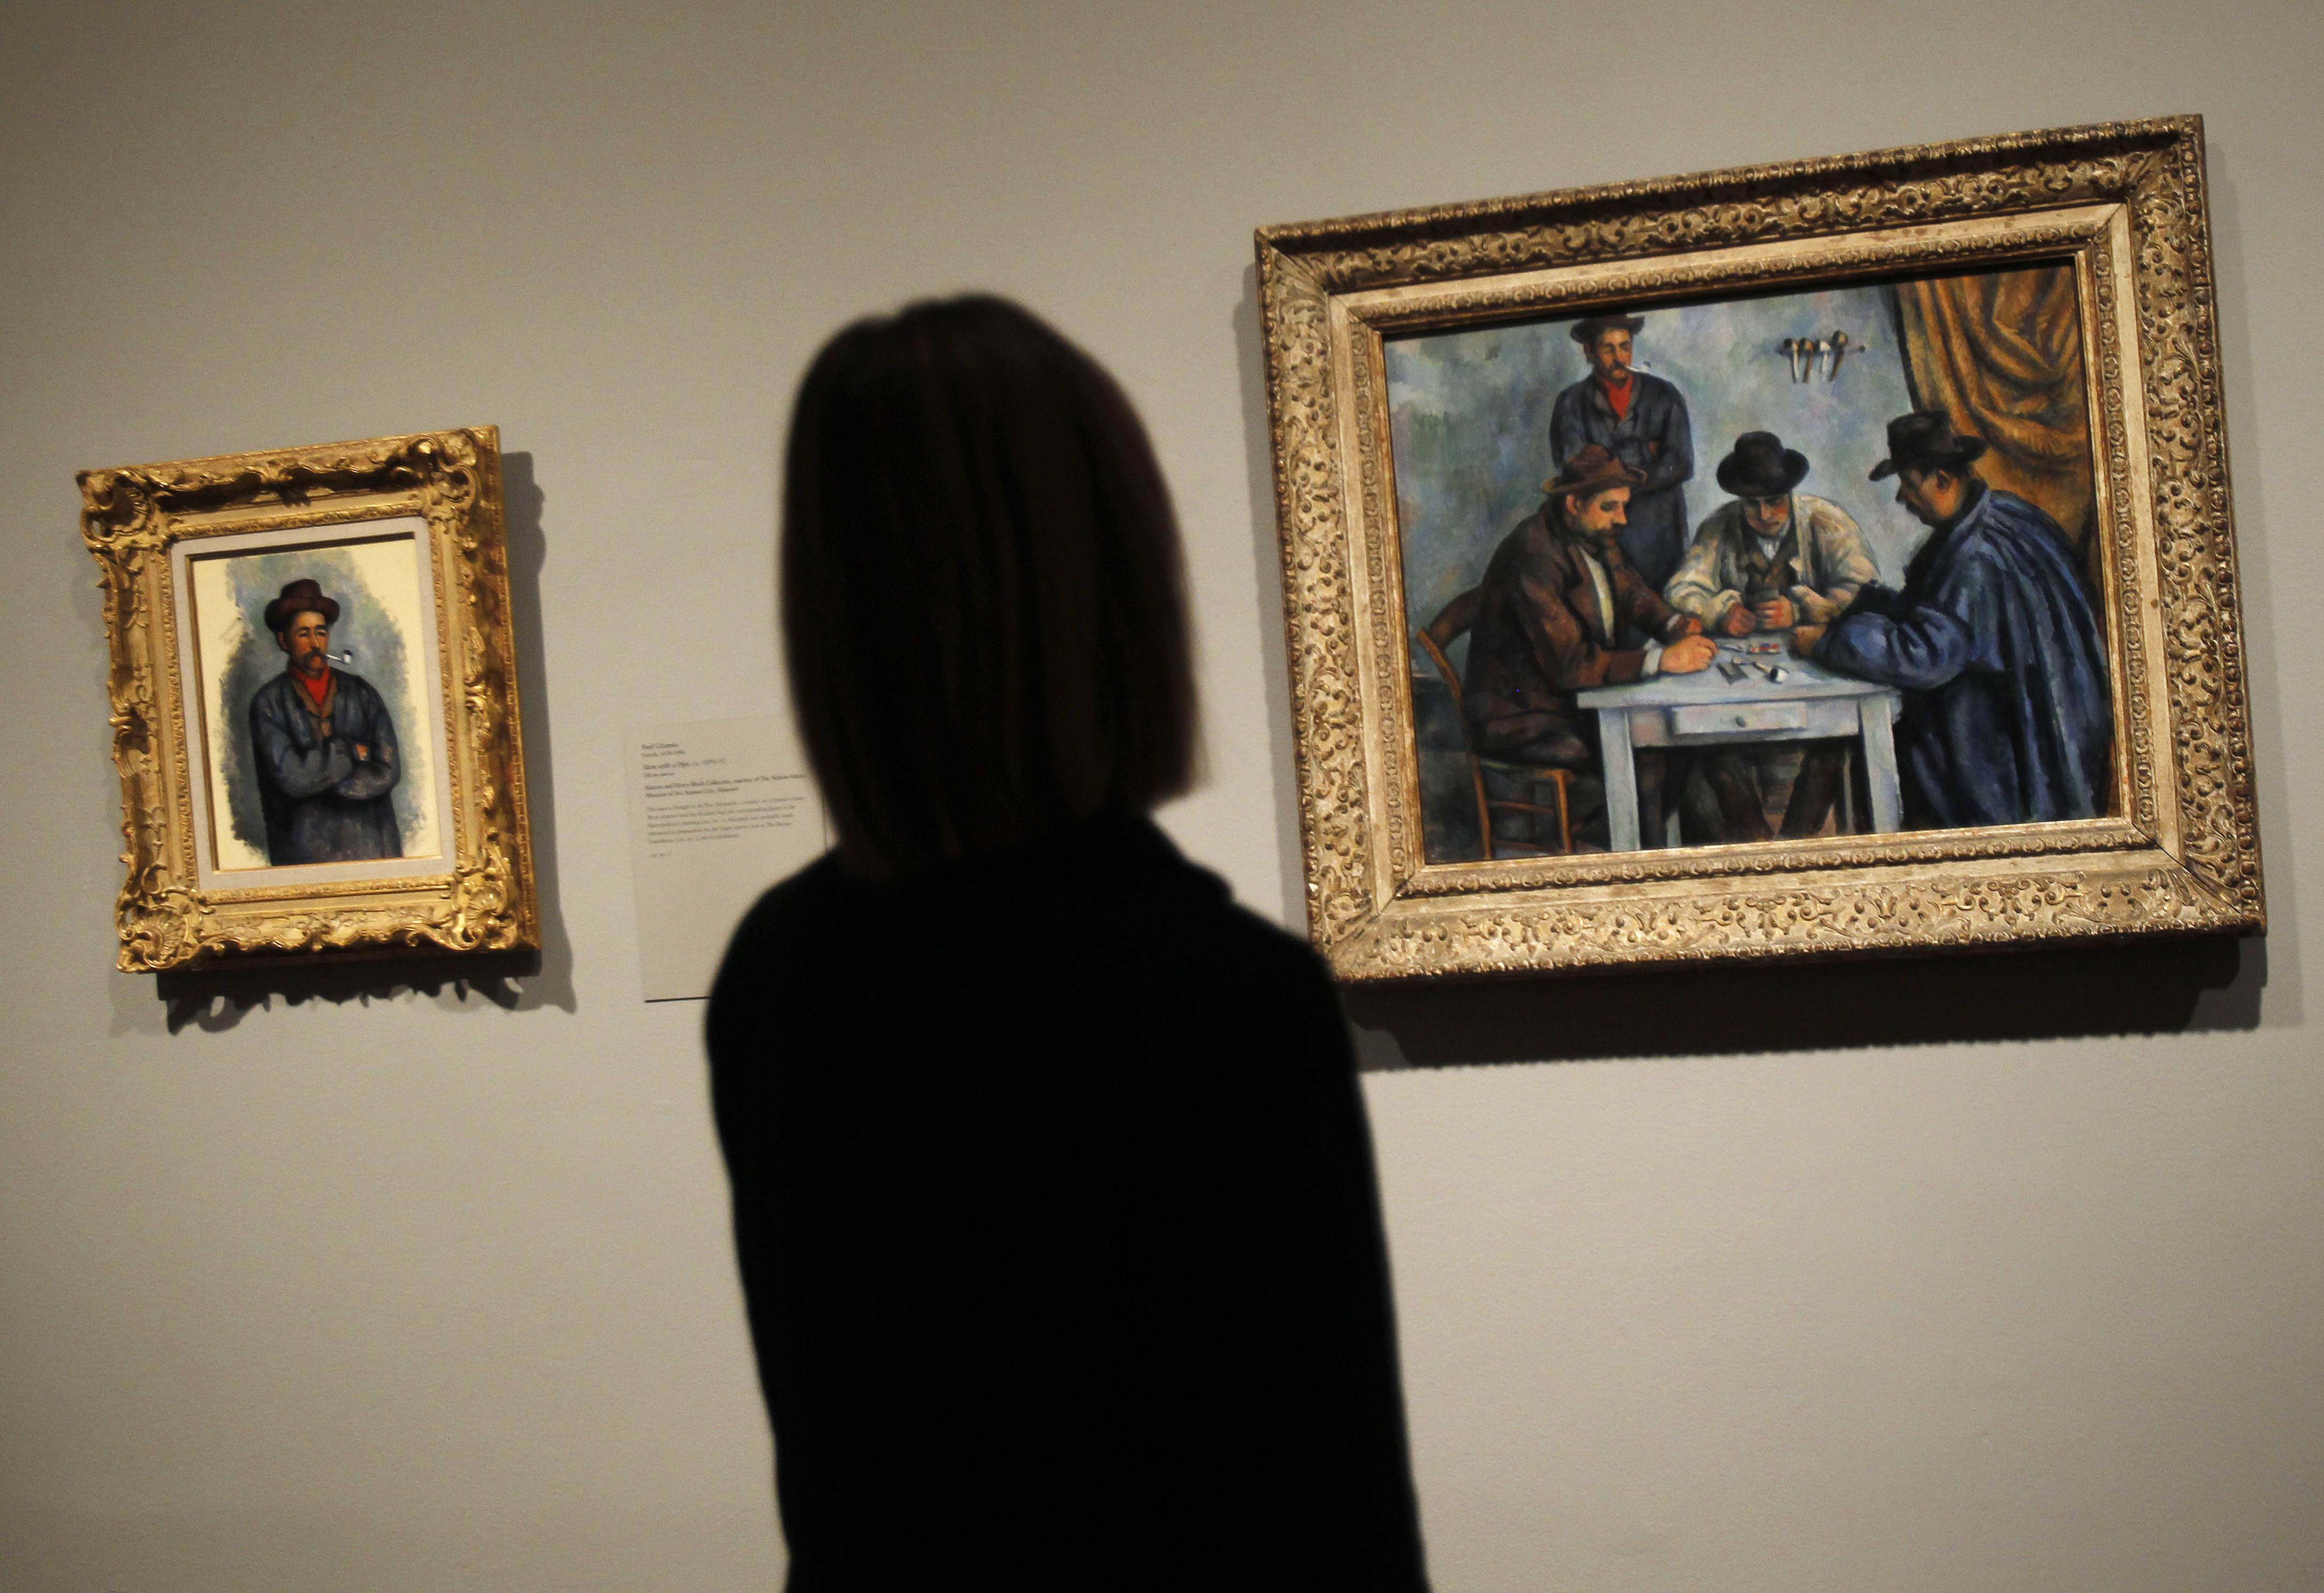 A woman views oil on canvas paintings (L-R) by artist Paul Cezanne titled 'Man with a Pipe' (1890-92) and 'The Card Players' (1890-92) are seen during a press preview for Cezanne's Card Players exhibit at The Metropolitan Museum of Art in New York